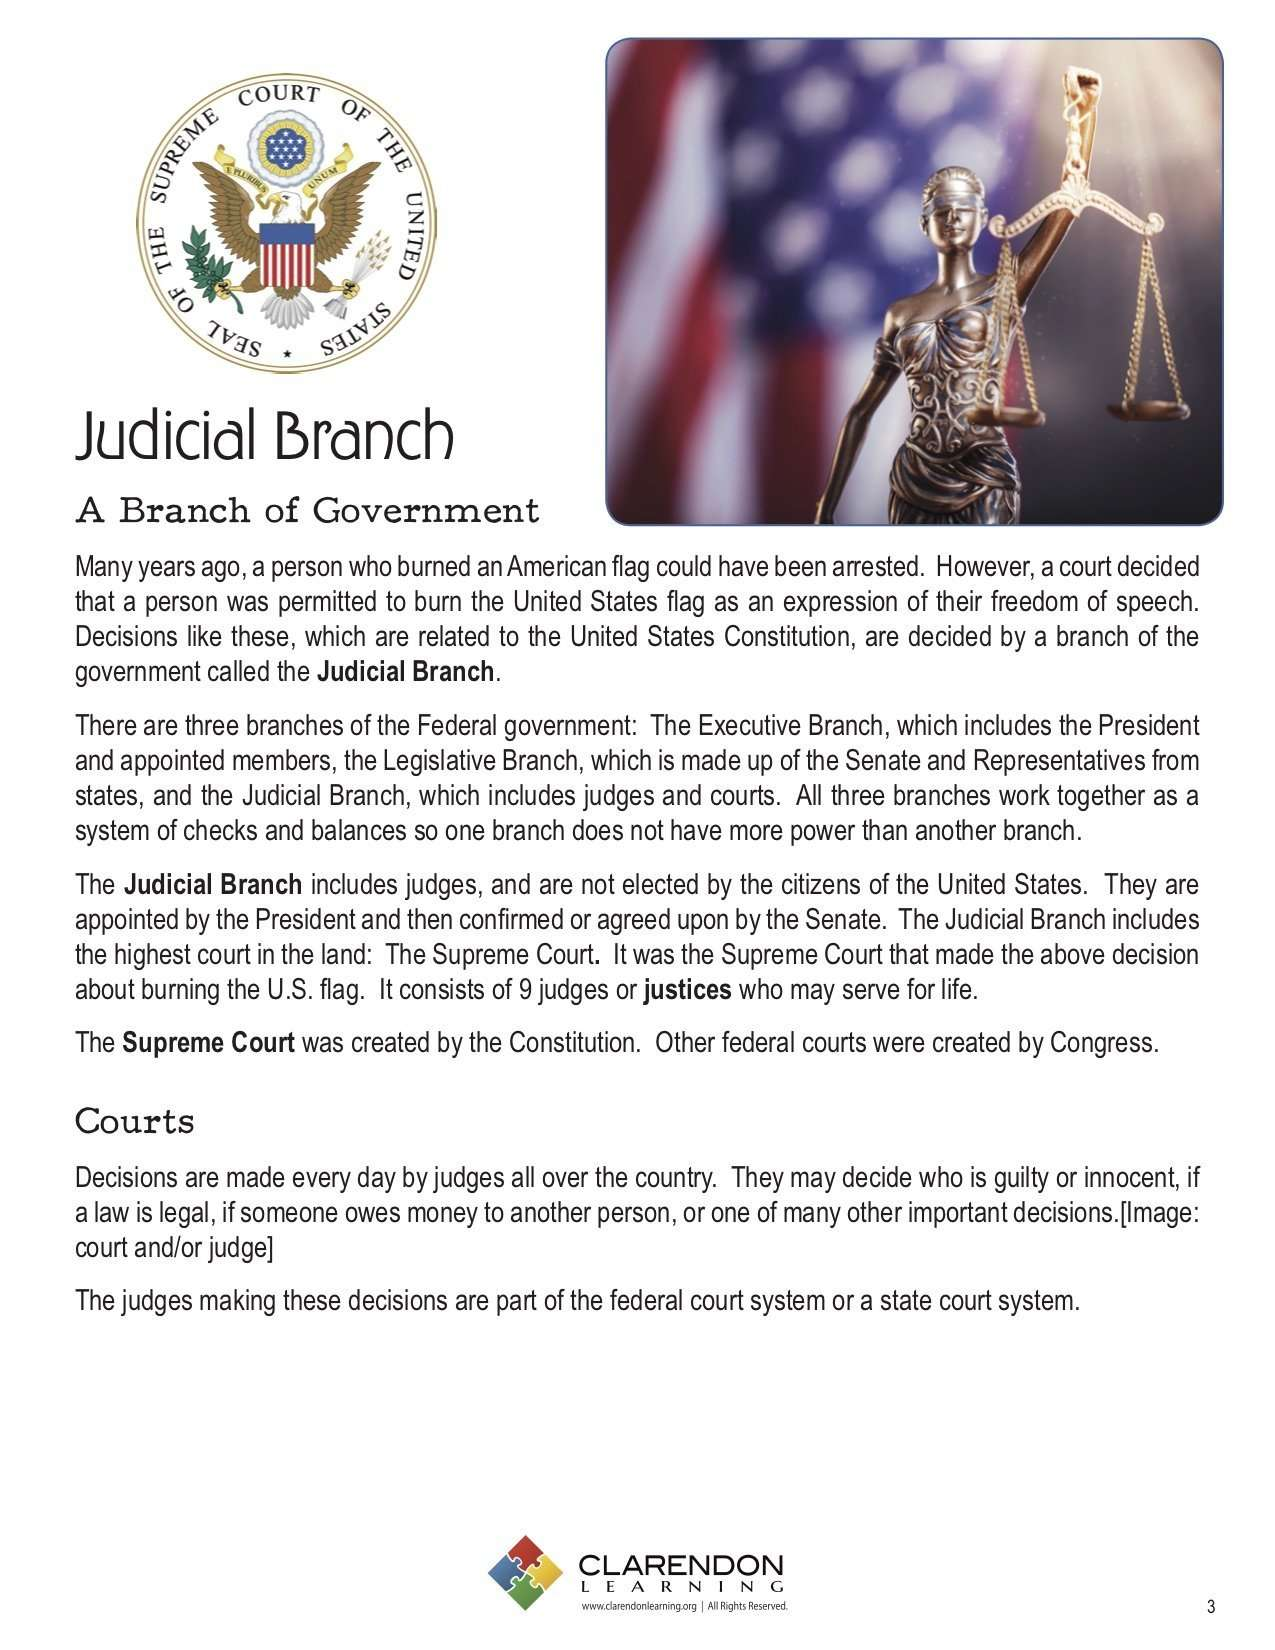 Judicial Branch Lesson Plan   Clarendon Learning